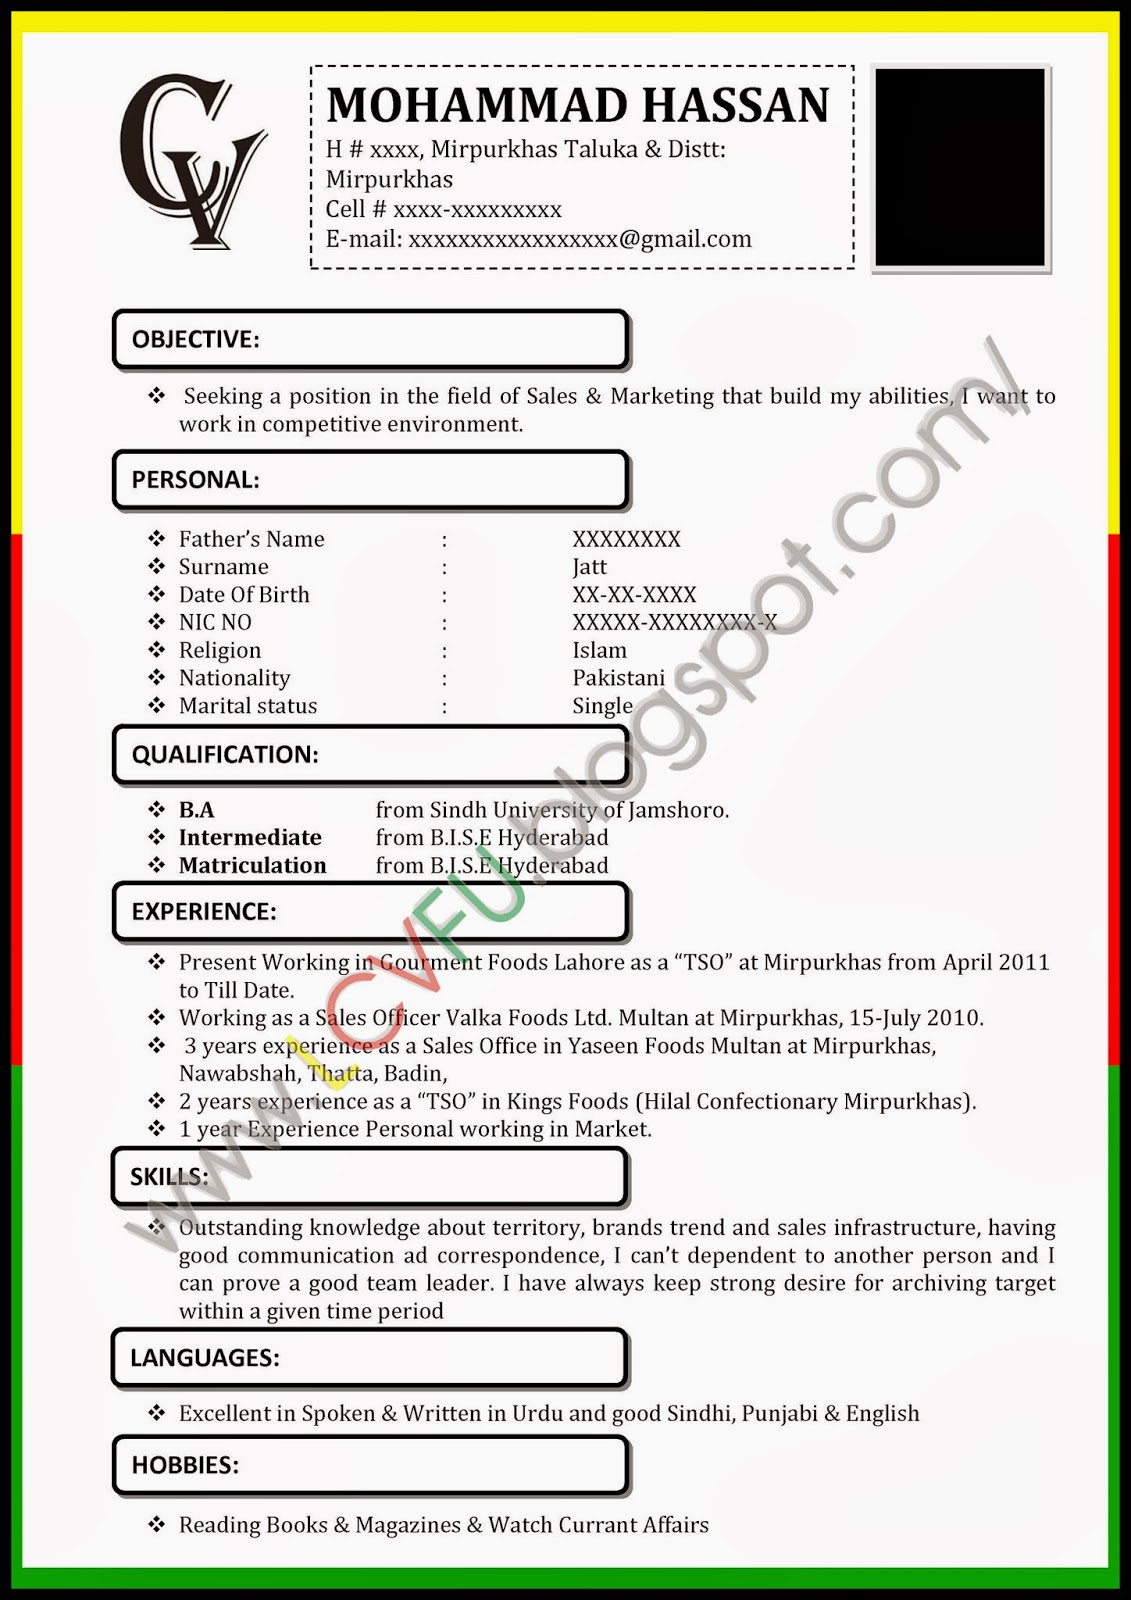 latest cv format ms word service resume latest cv format ms word latest cv format 2017 in in ms word latest